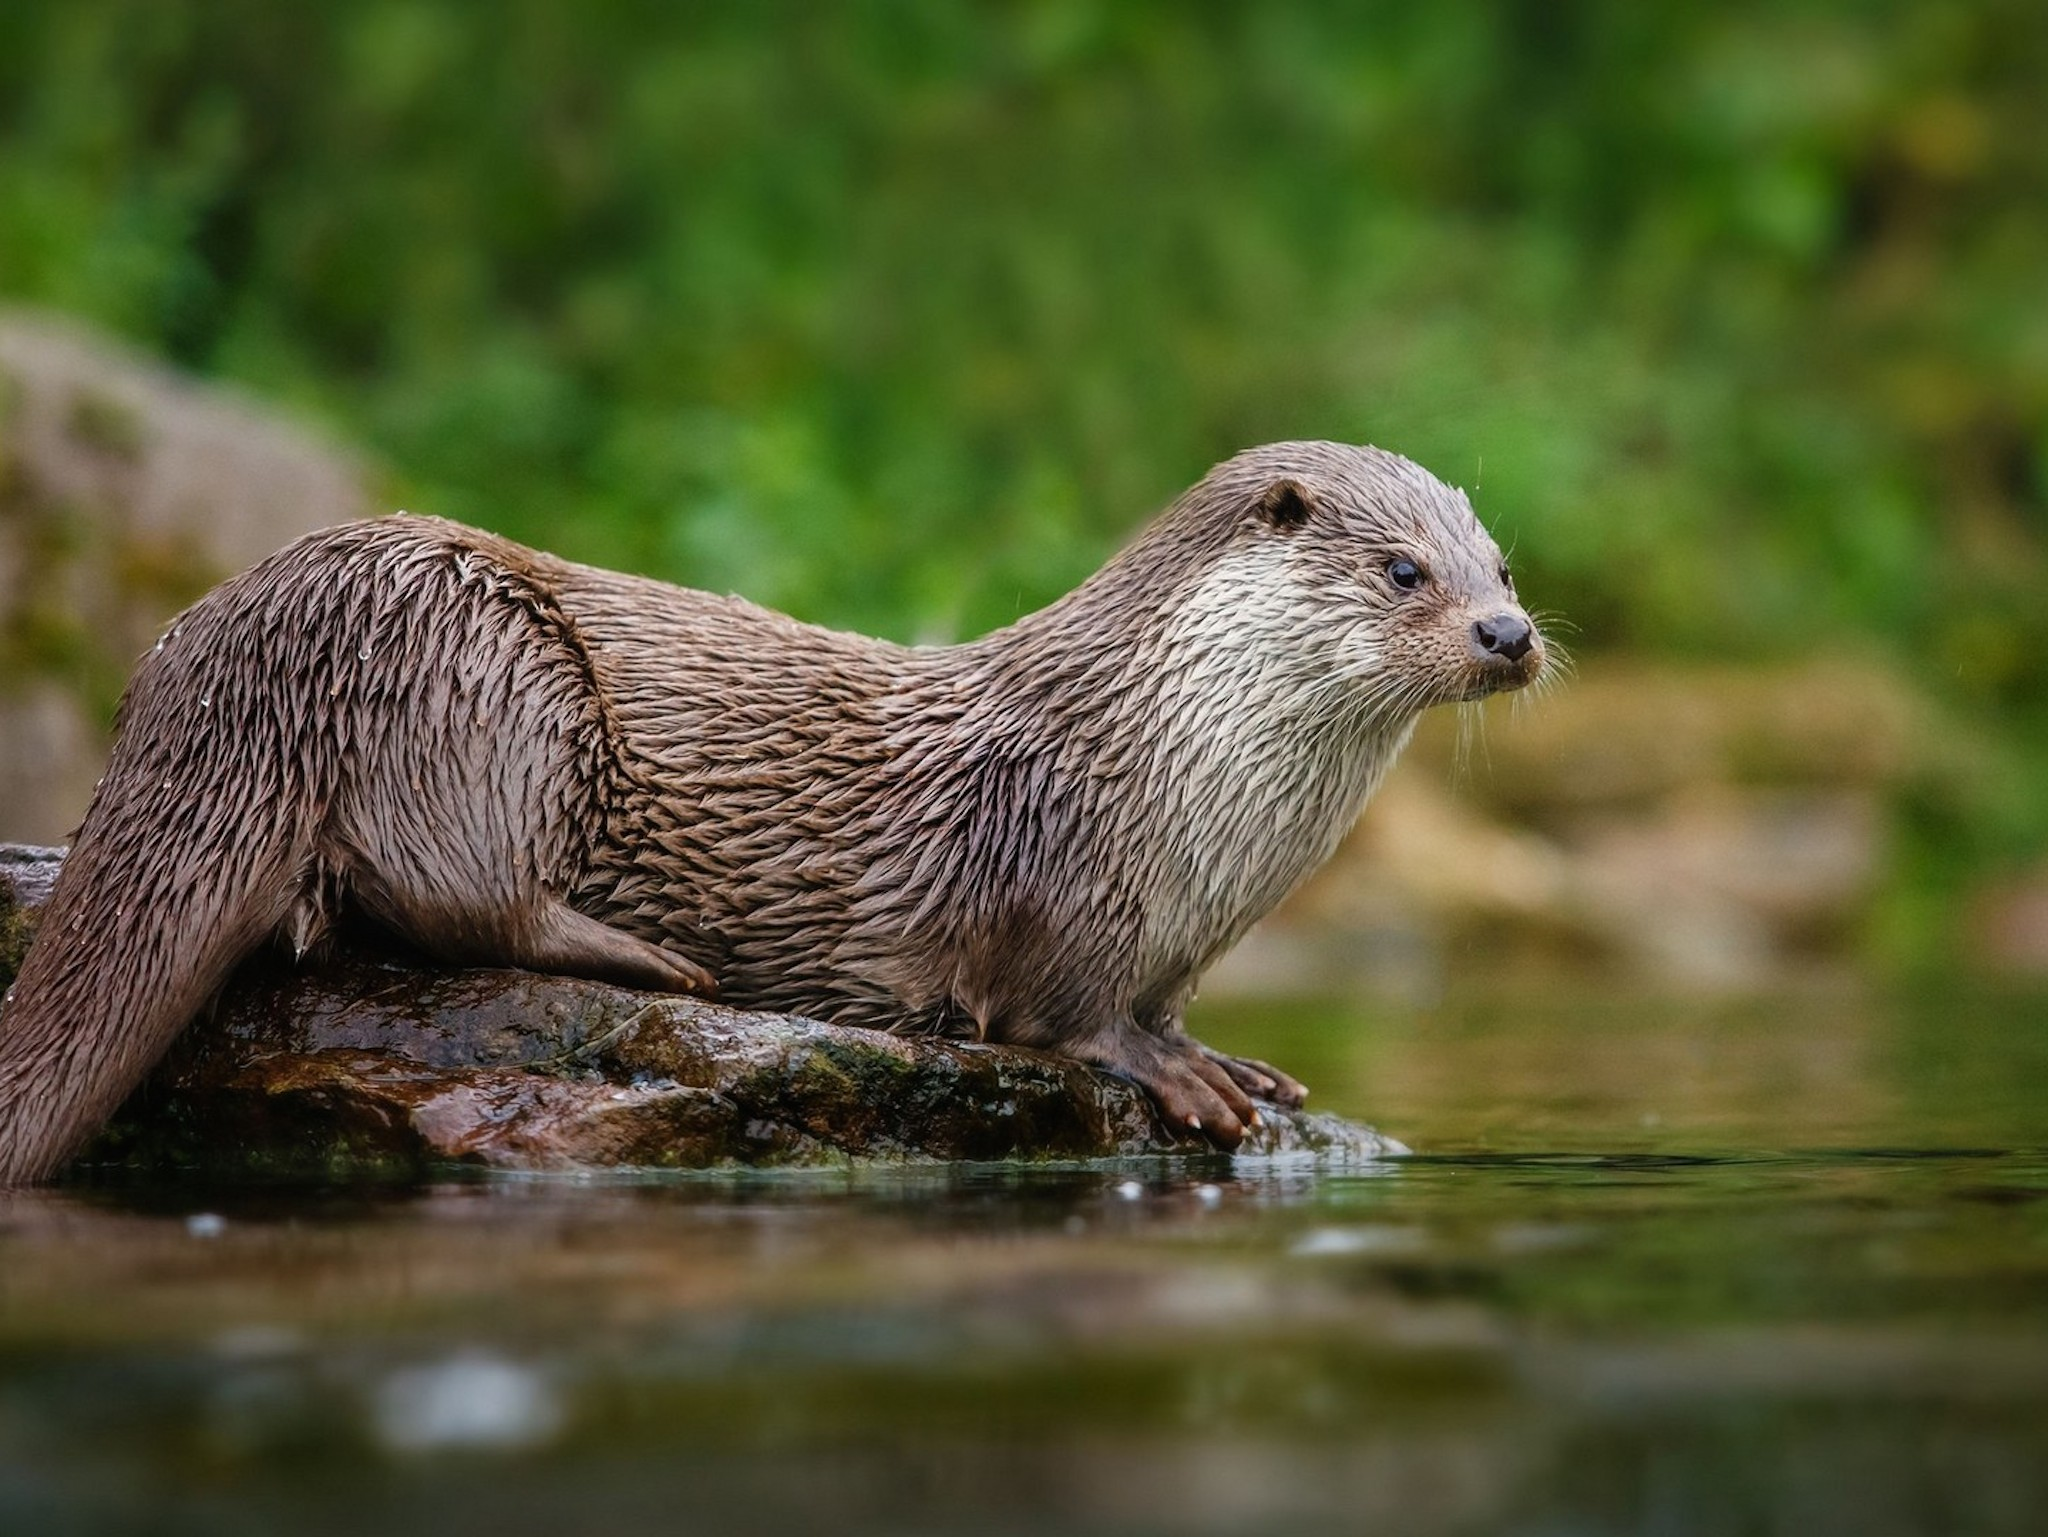 North American River Otter Wallpaper | Free HD Downloads